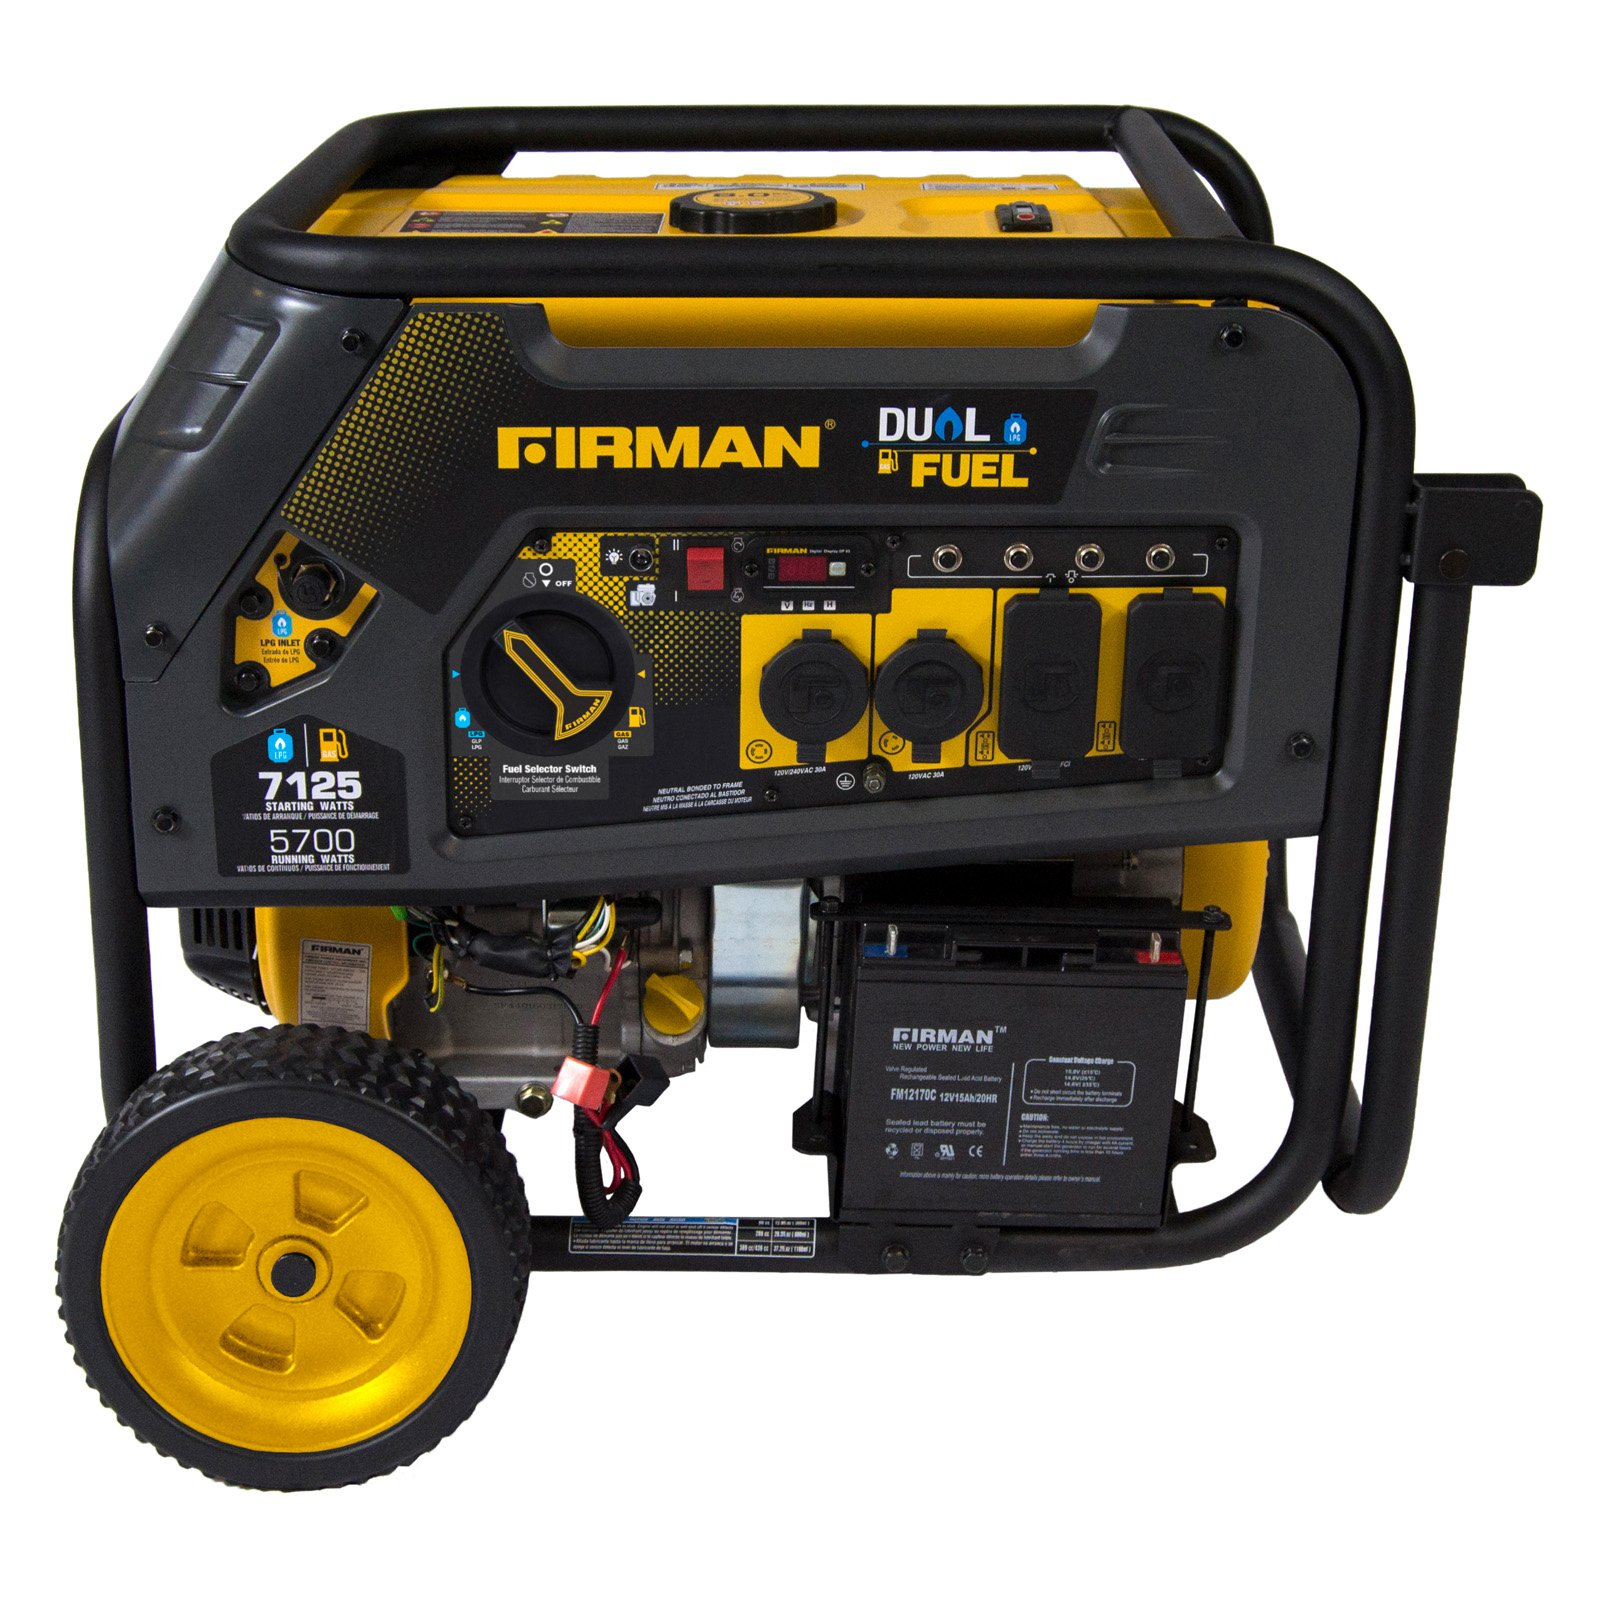 FIRMAN 4550/3650 Watt Recoil Start Gas or Propane Dual Fuel Portable Generator CARB and cETL Certified With Wheel Kit